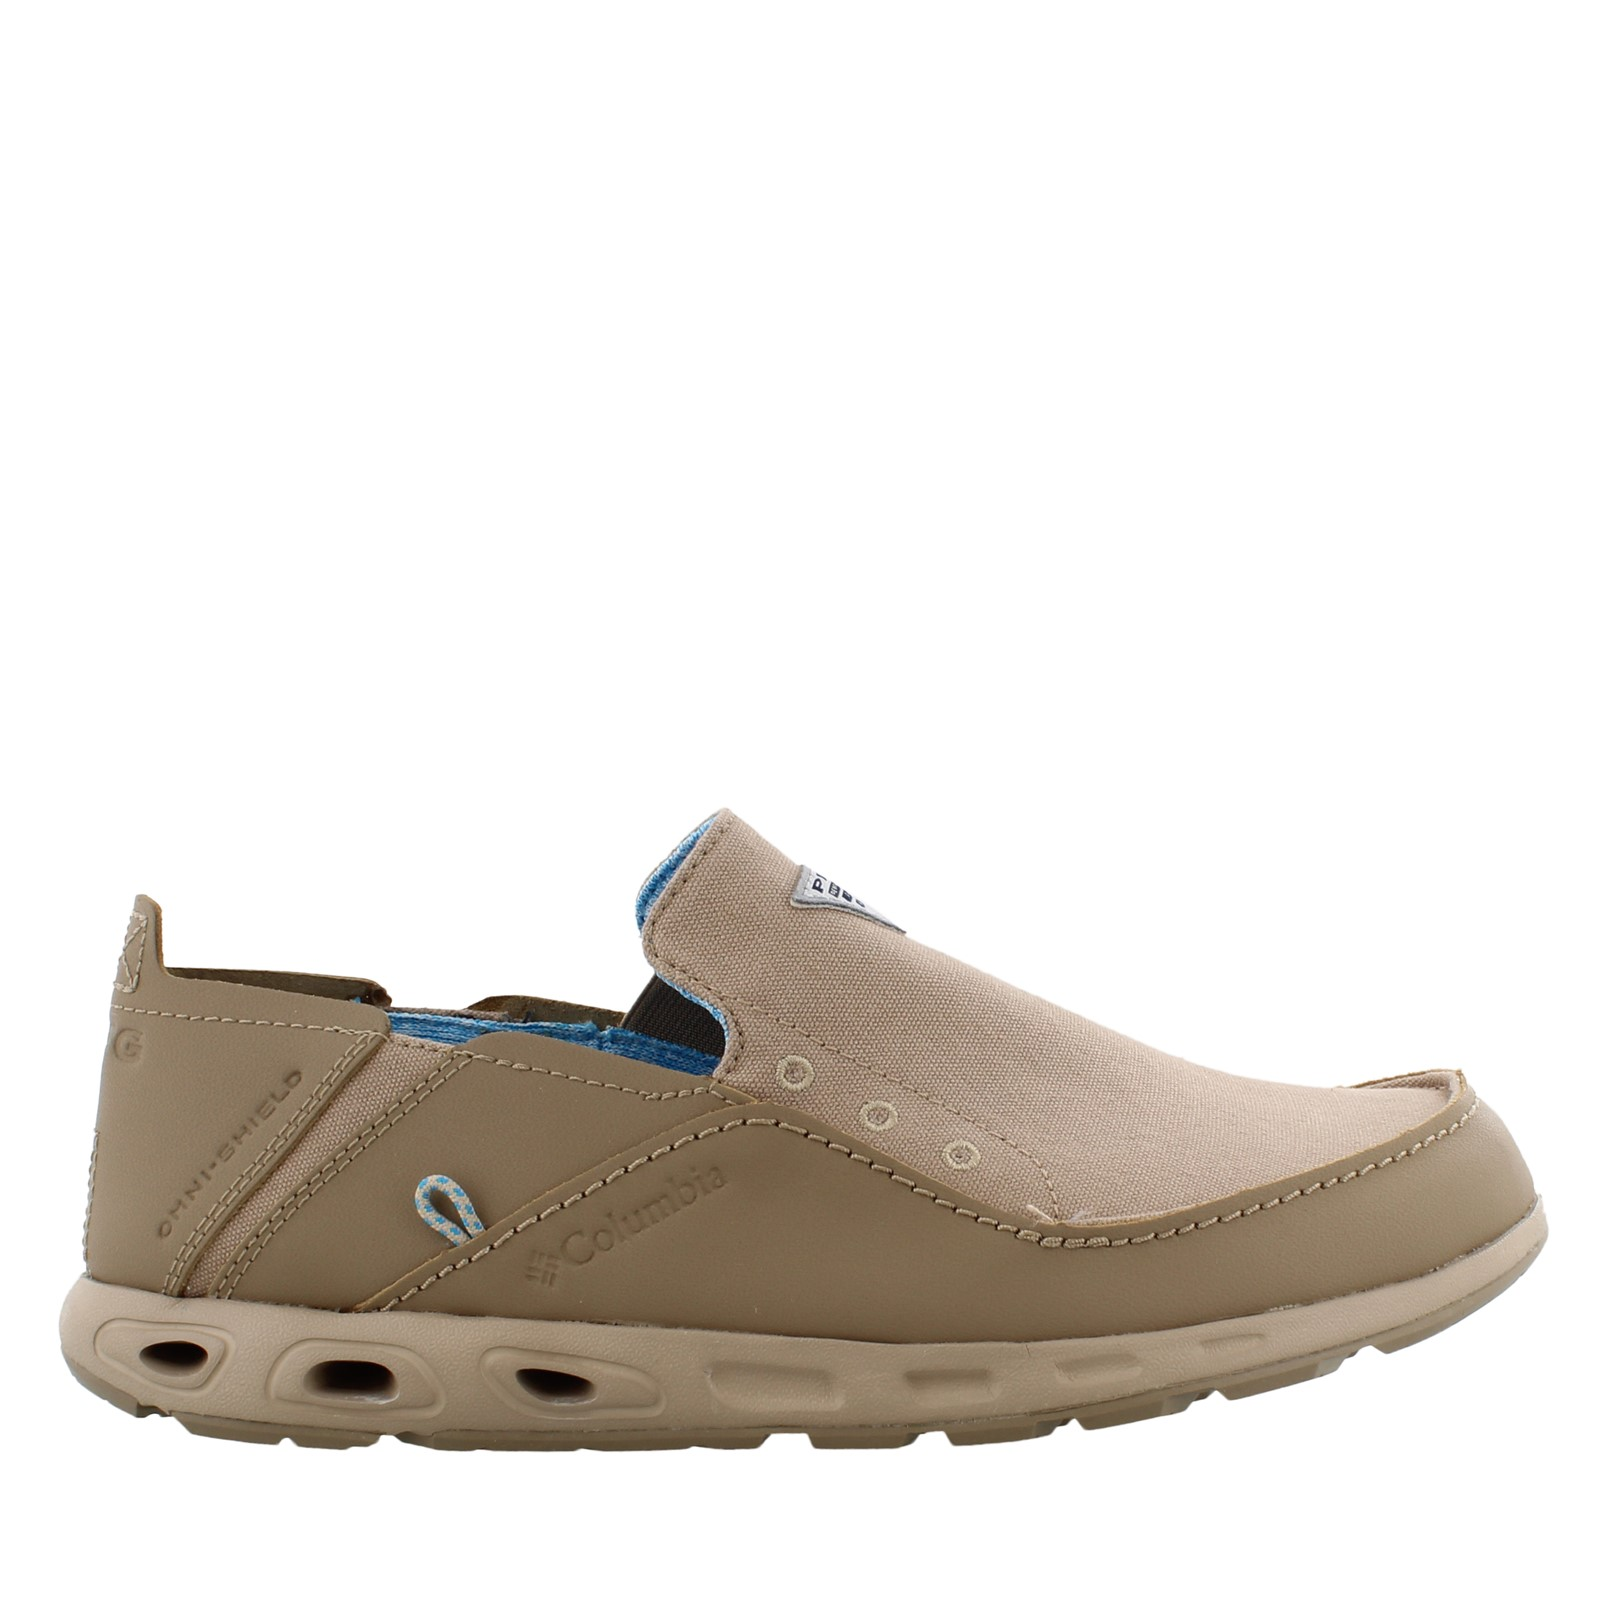 Men's Columbia, Bahama Vent PFG Slip on Boat Shoe